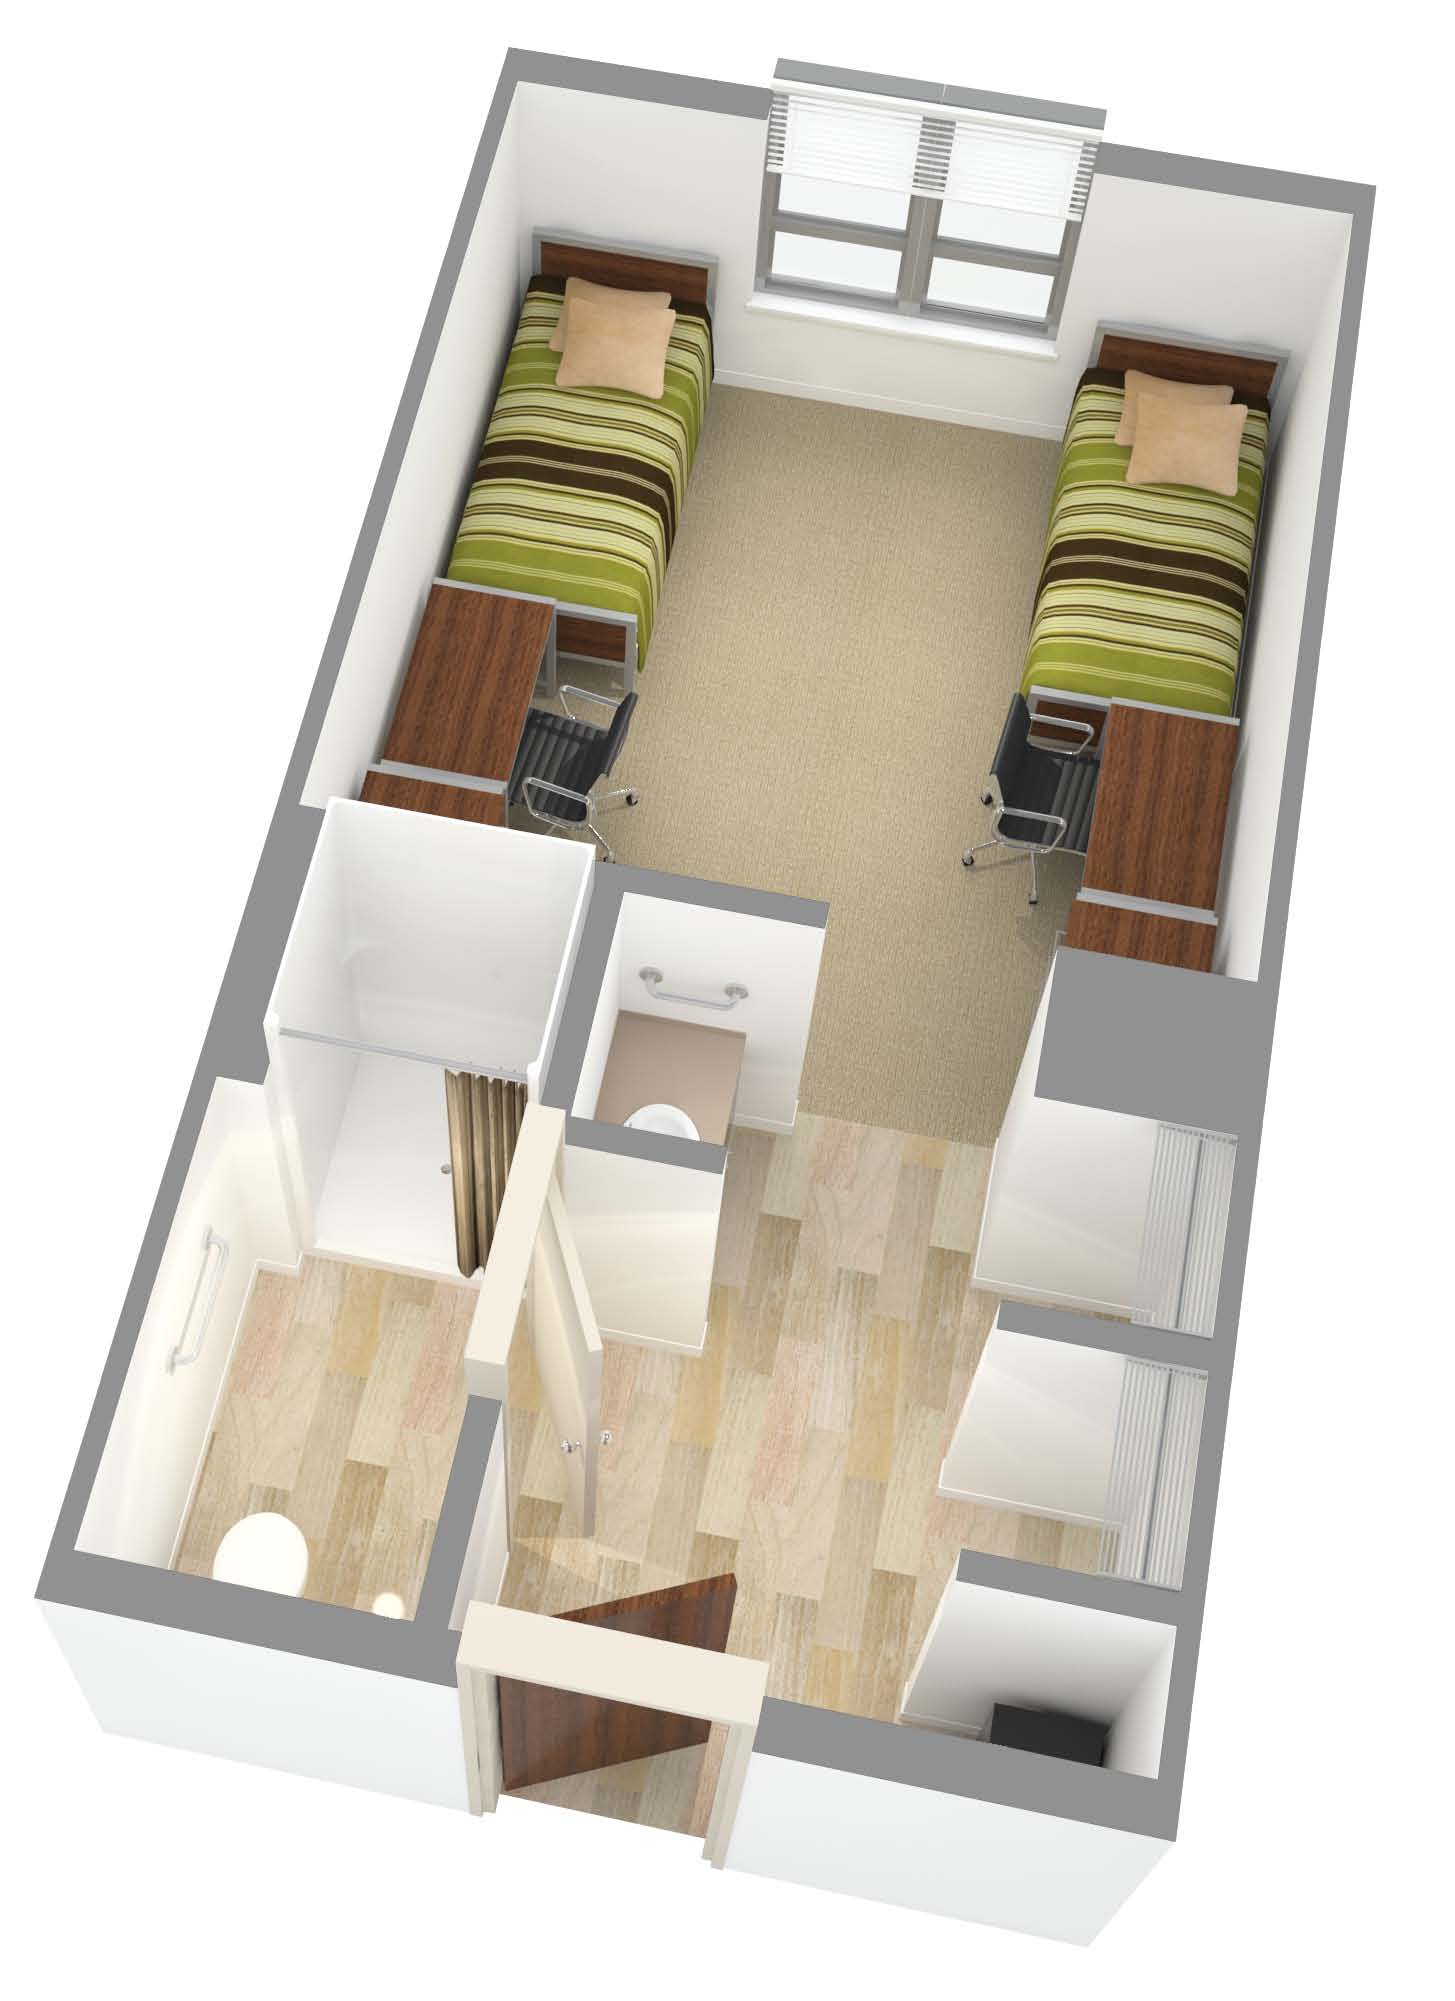 New Residence Halls - Shared Room Layout